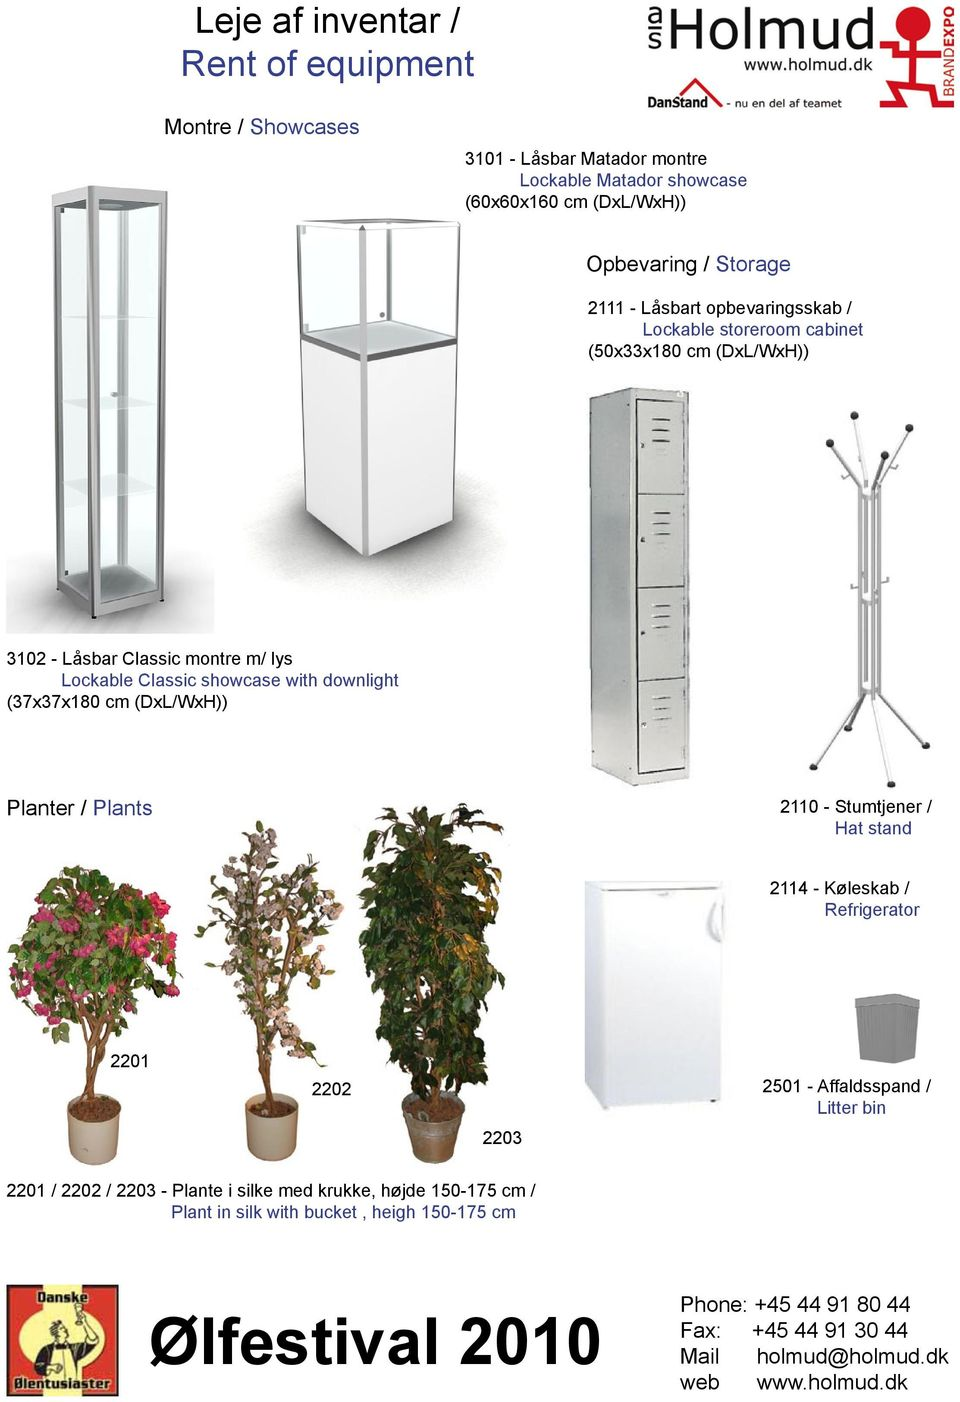 Lockable Classic showcase with downlight (37x37x180 cm (DxL/WxH)) Planter / Plants 2110 - Stumtjener / Hat stand 2114 - Køleskab / Refrigerator